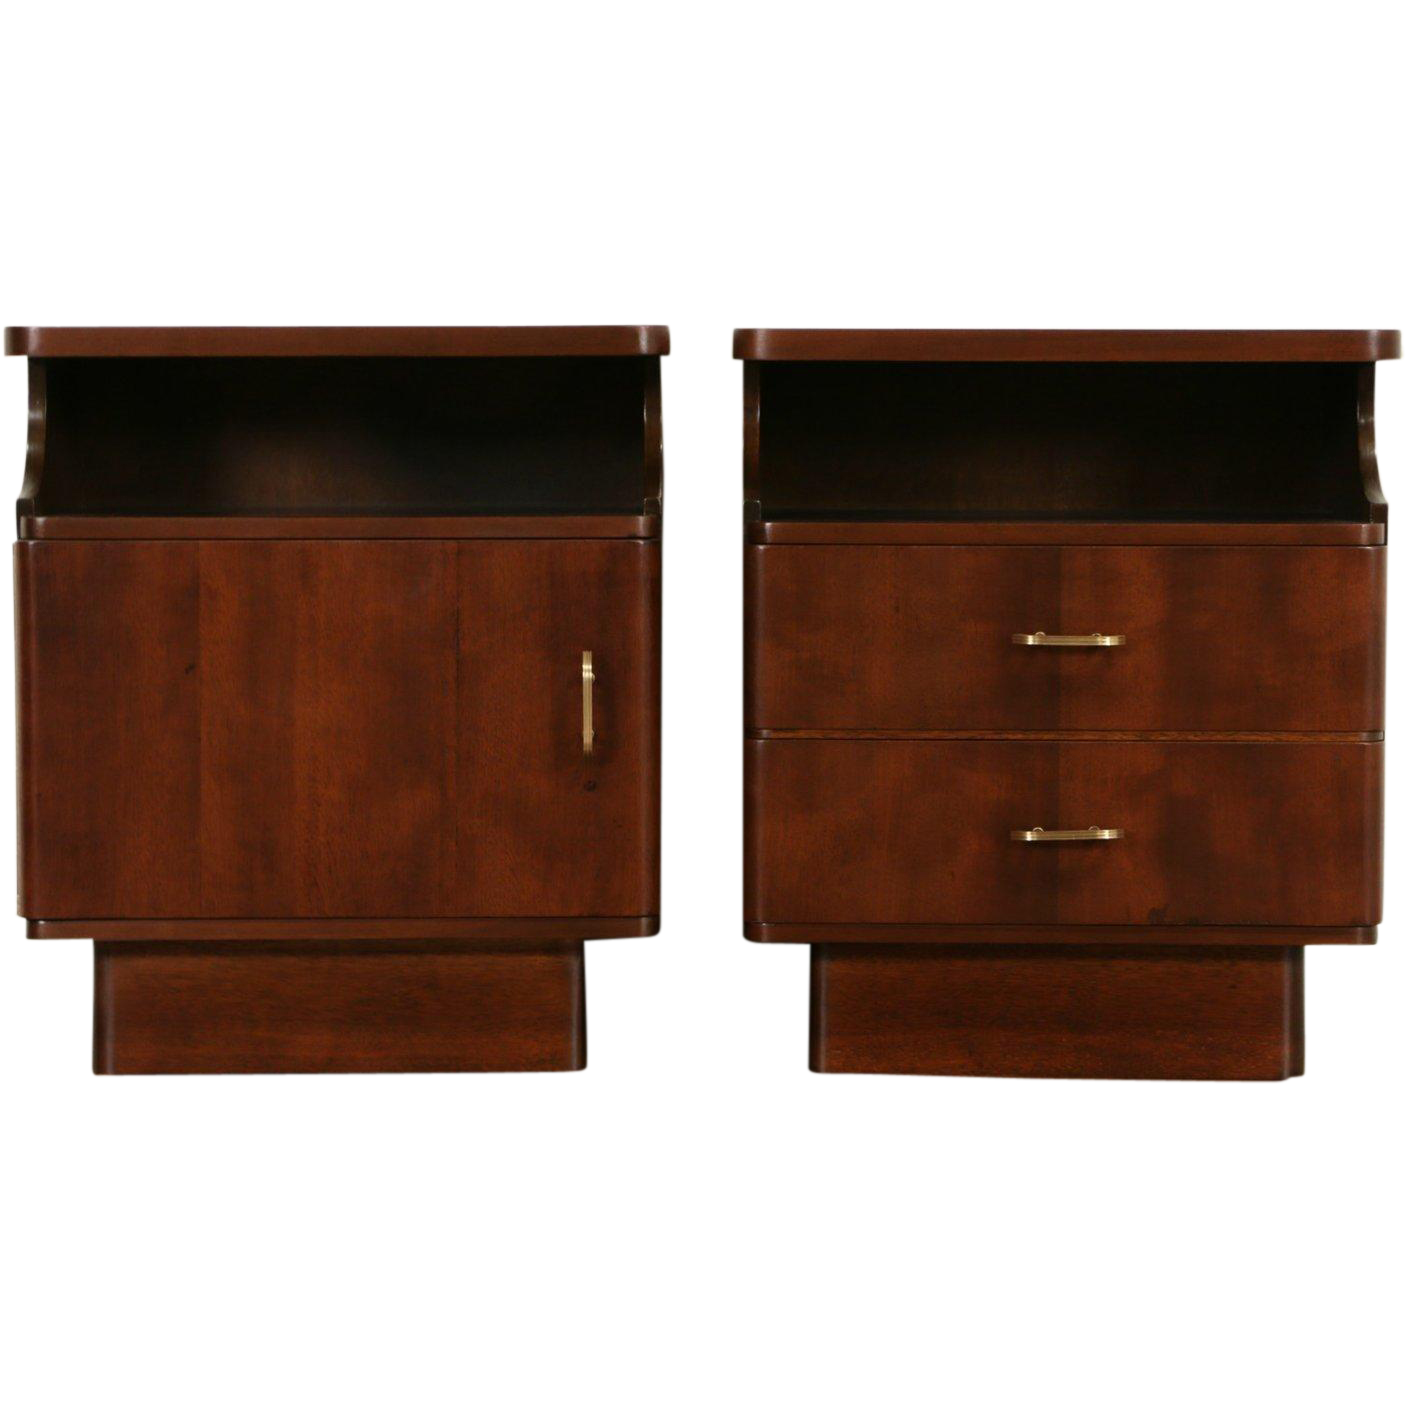 Midcentury Modern Pair of Nightstands or End Tables, 1950's Vintage